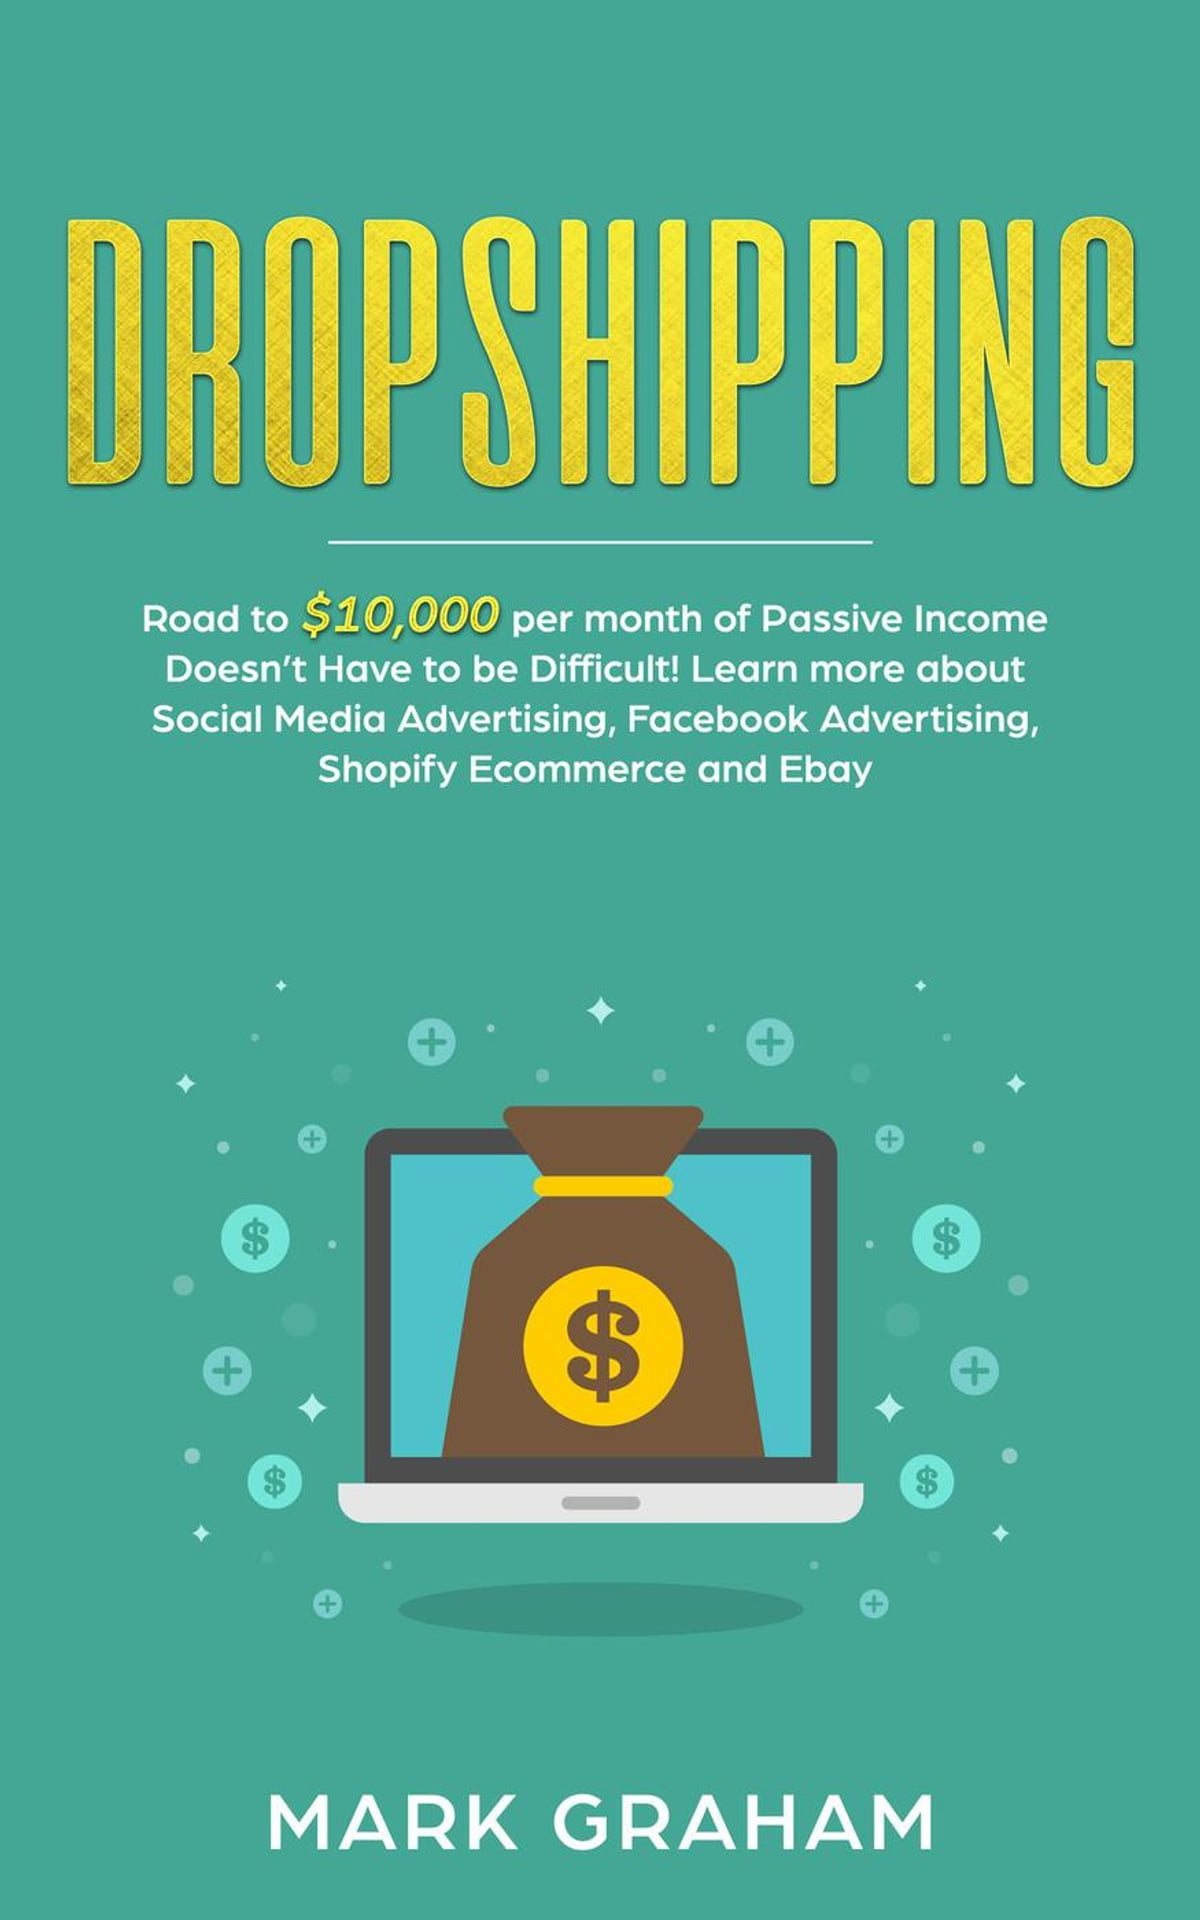 Dropshipping Road To 10 000 Per Month Of Passive Income Doesn T Have To Be Difficult Learn More About Social Media Advertising Facebook Advertising Shopify Ecommerce And Ebay Ebook Por Mark Graham 9781386125068 Rakuten Kobo México